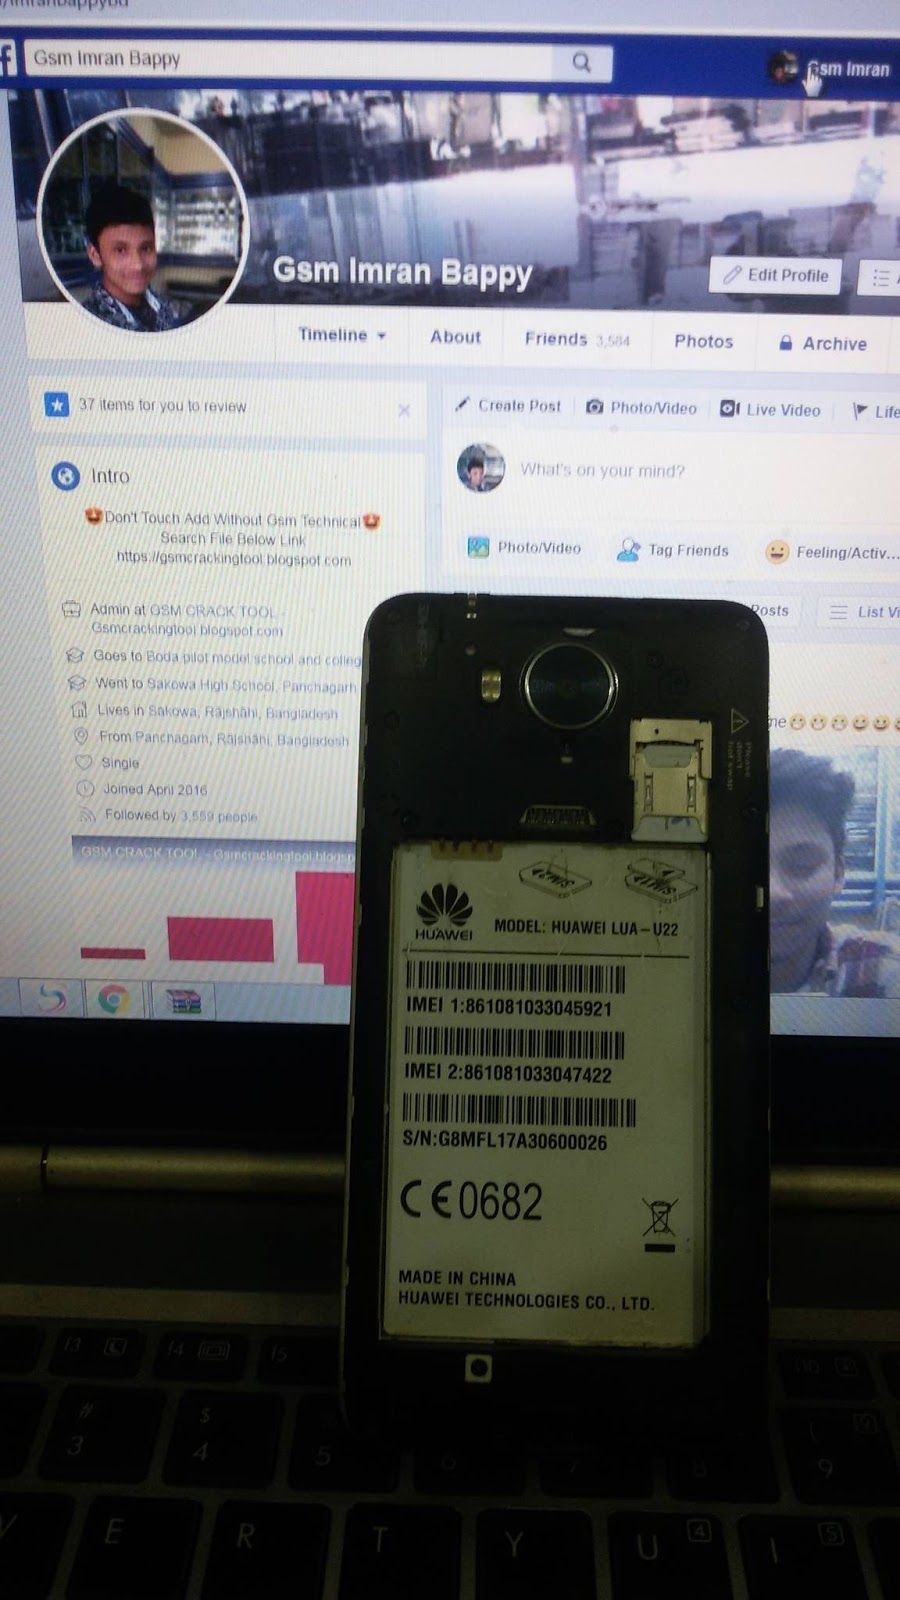 Huawei lua u22 flash file without password